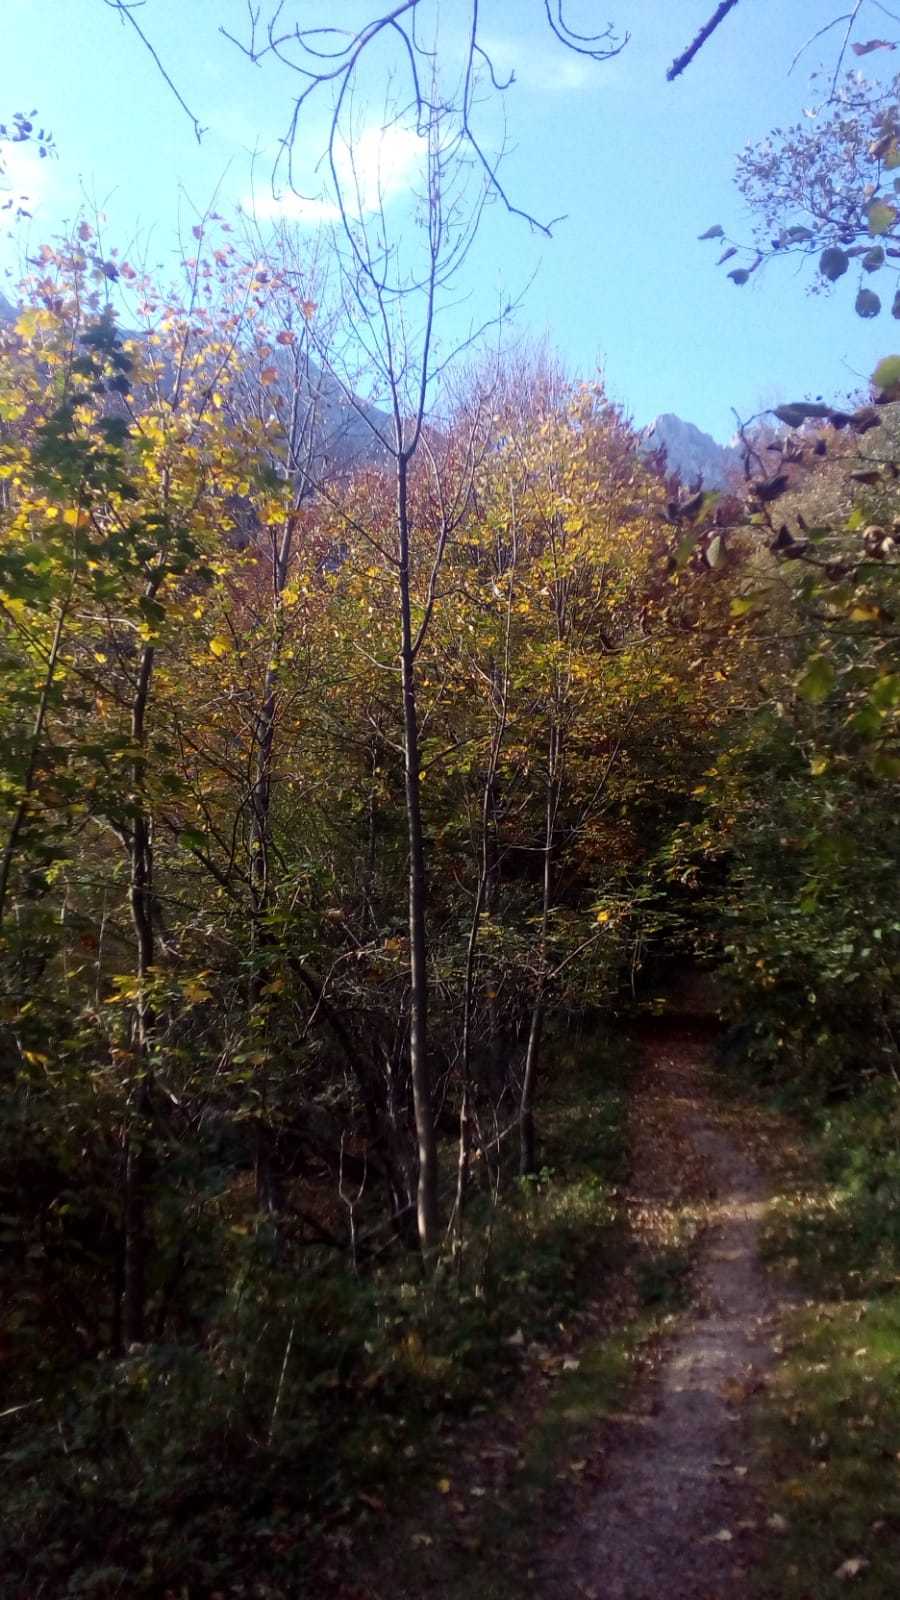 A narrow footpath through a forest of deciduous trees turning yellow